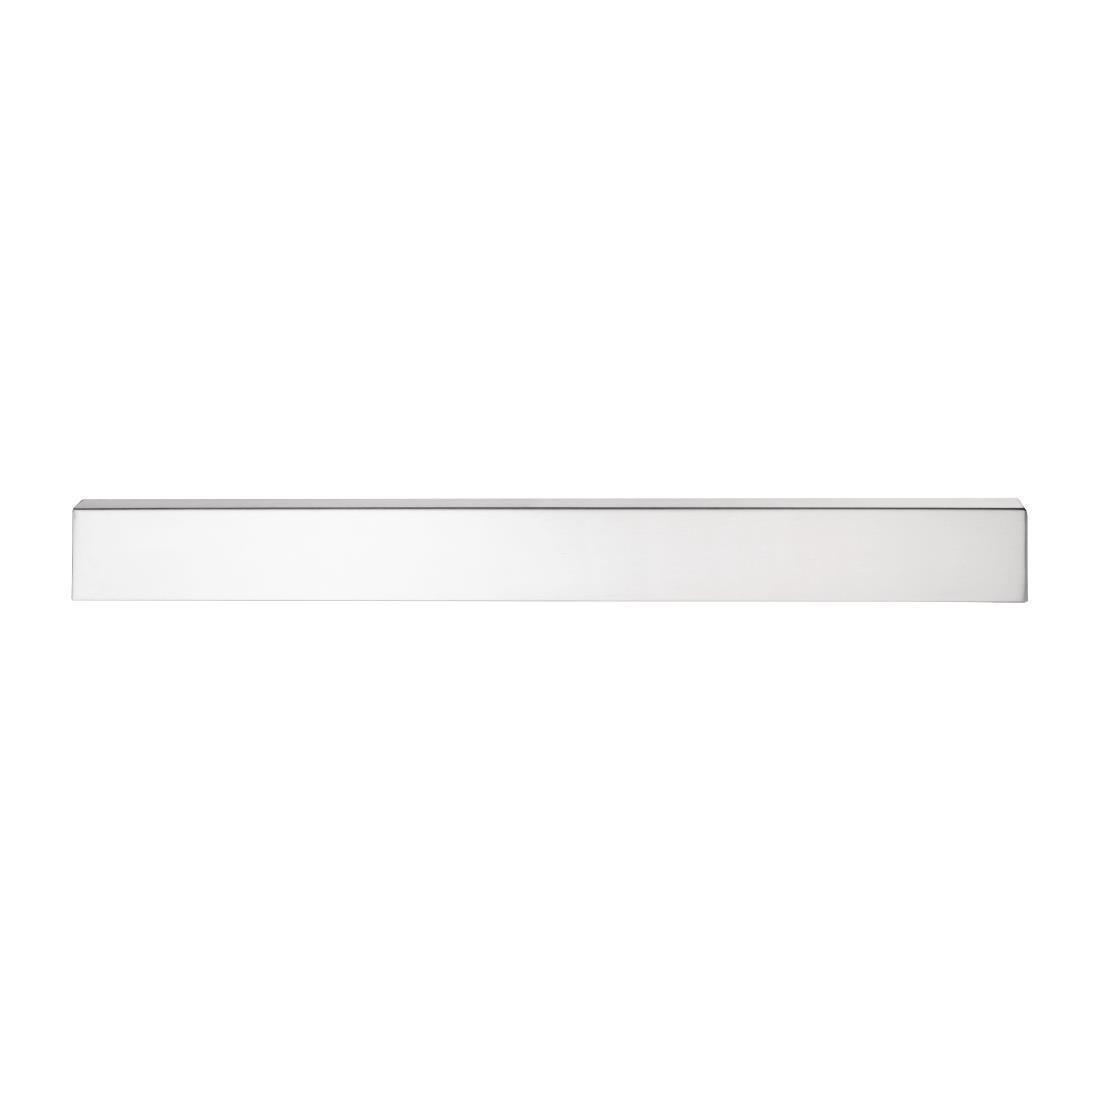 Vogue Stainless Steel Magnetic Knife Rack 450mm - Each - CP118